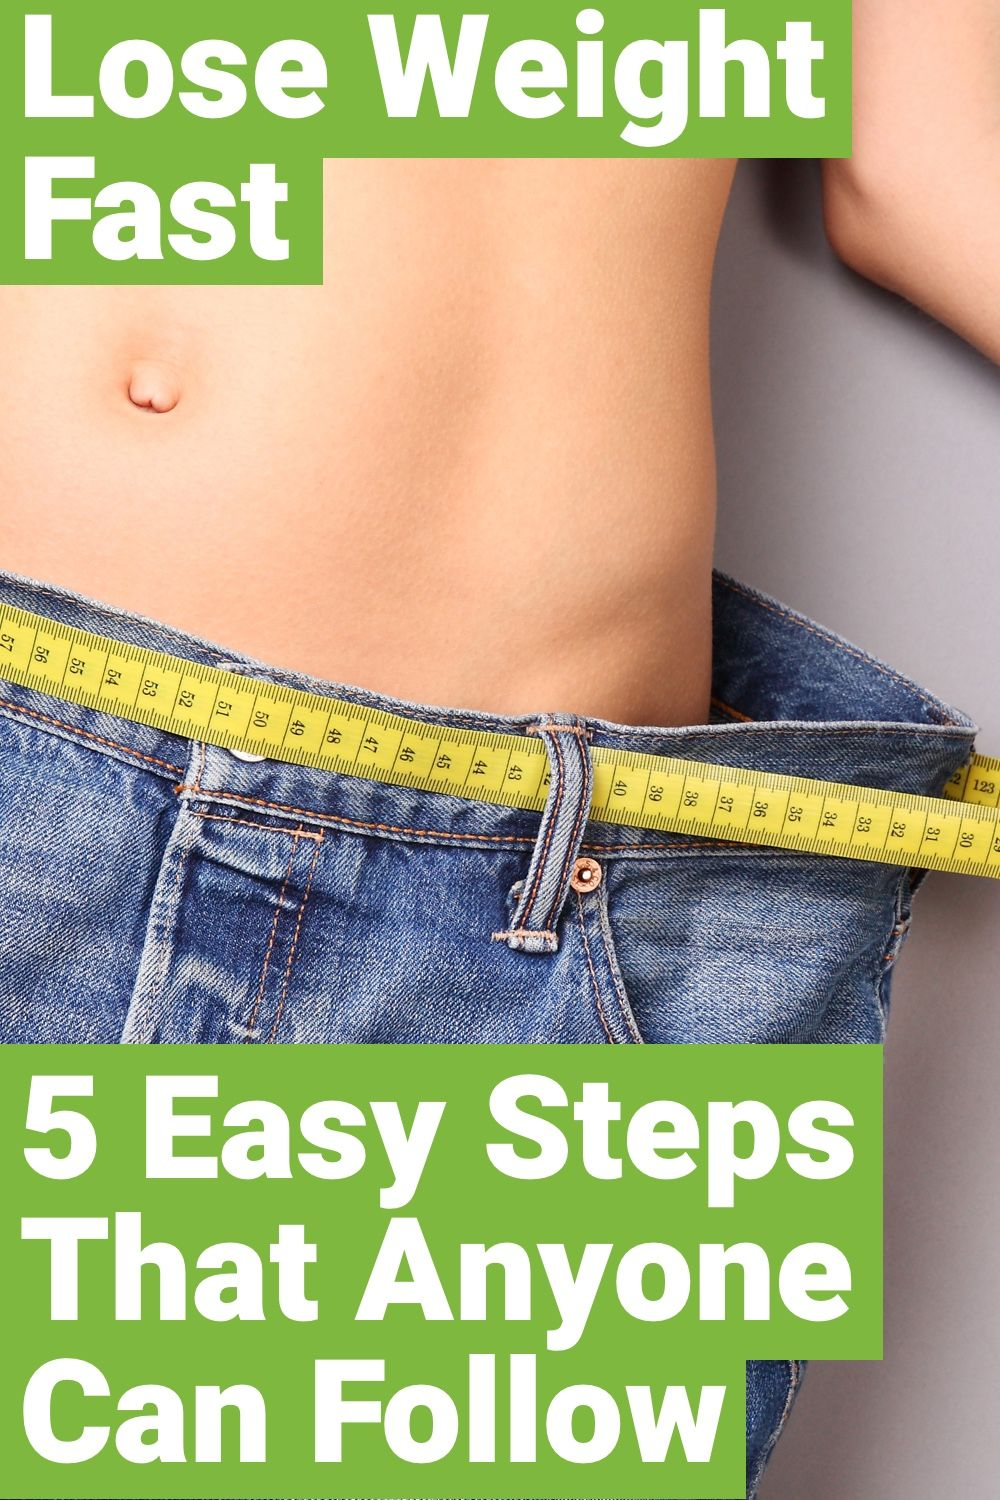 How to lose weight fast i ll do anything